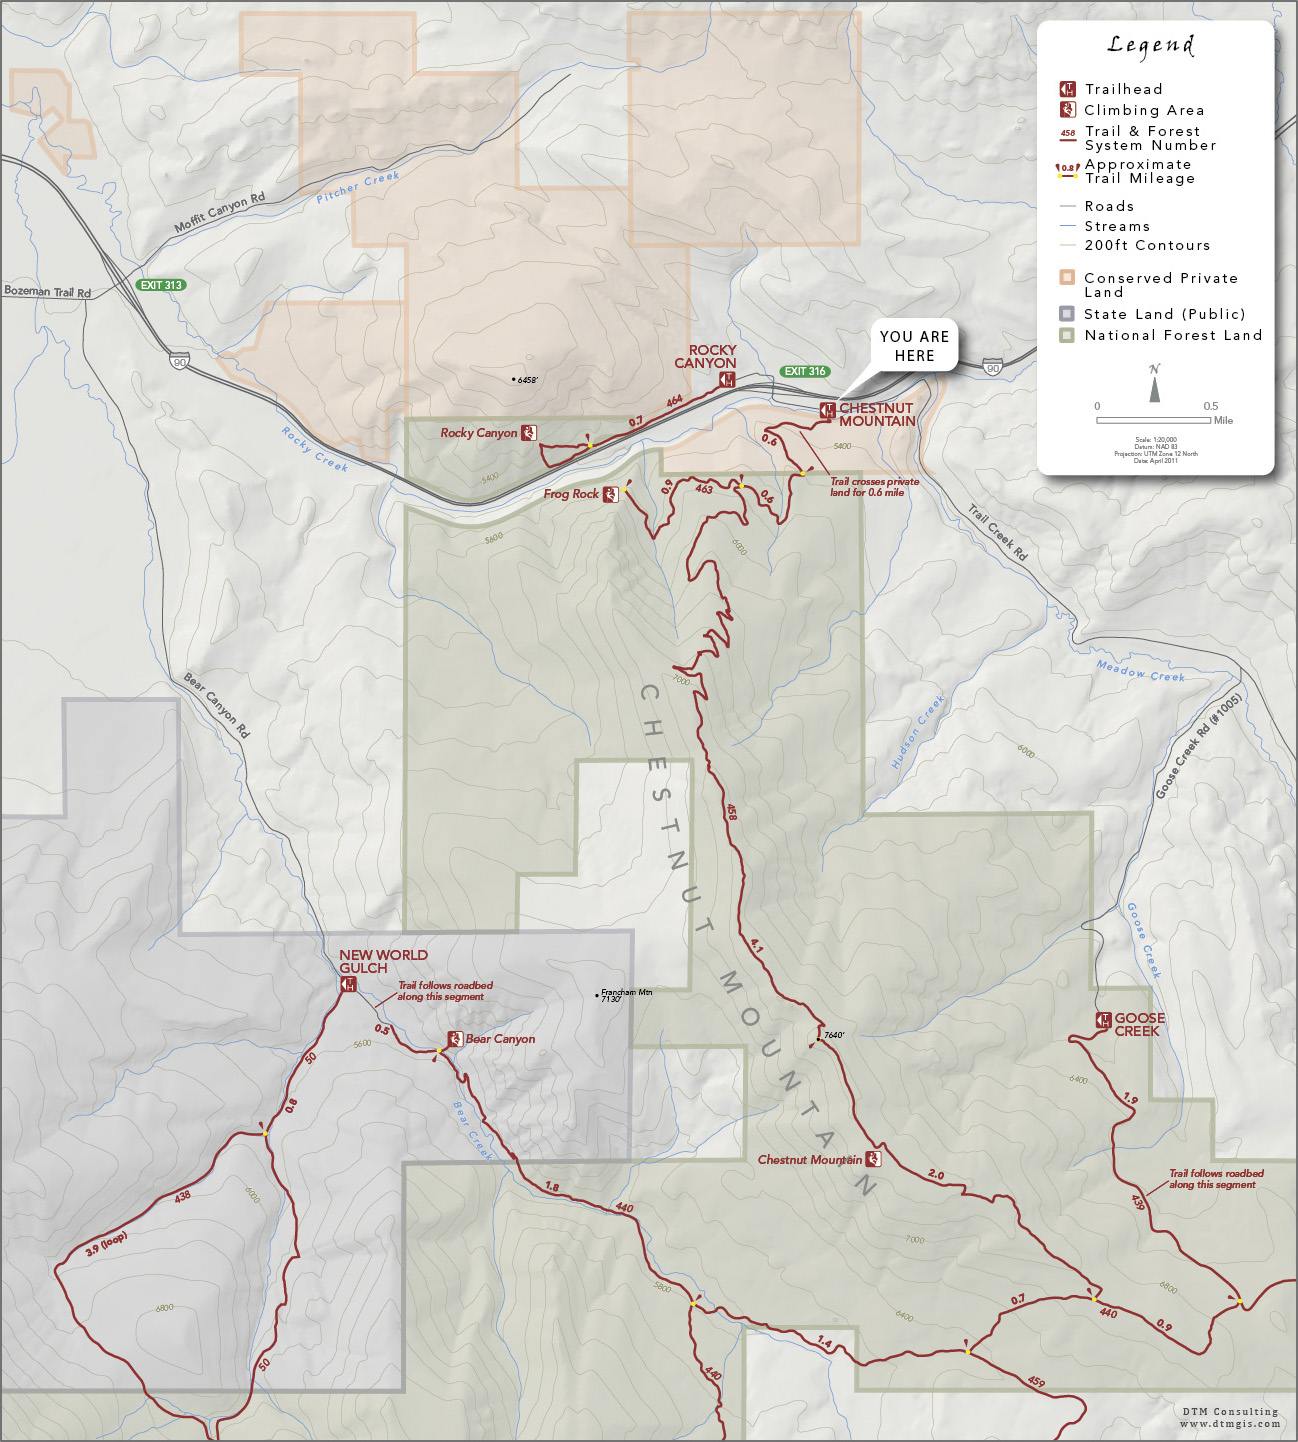 DTM Consulting, Inc. | Chestnut Mountain Trailhead Map